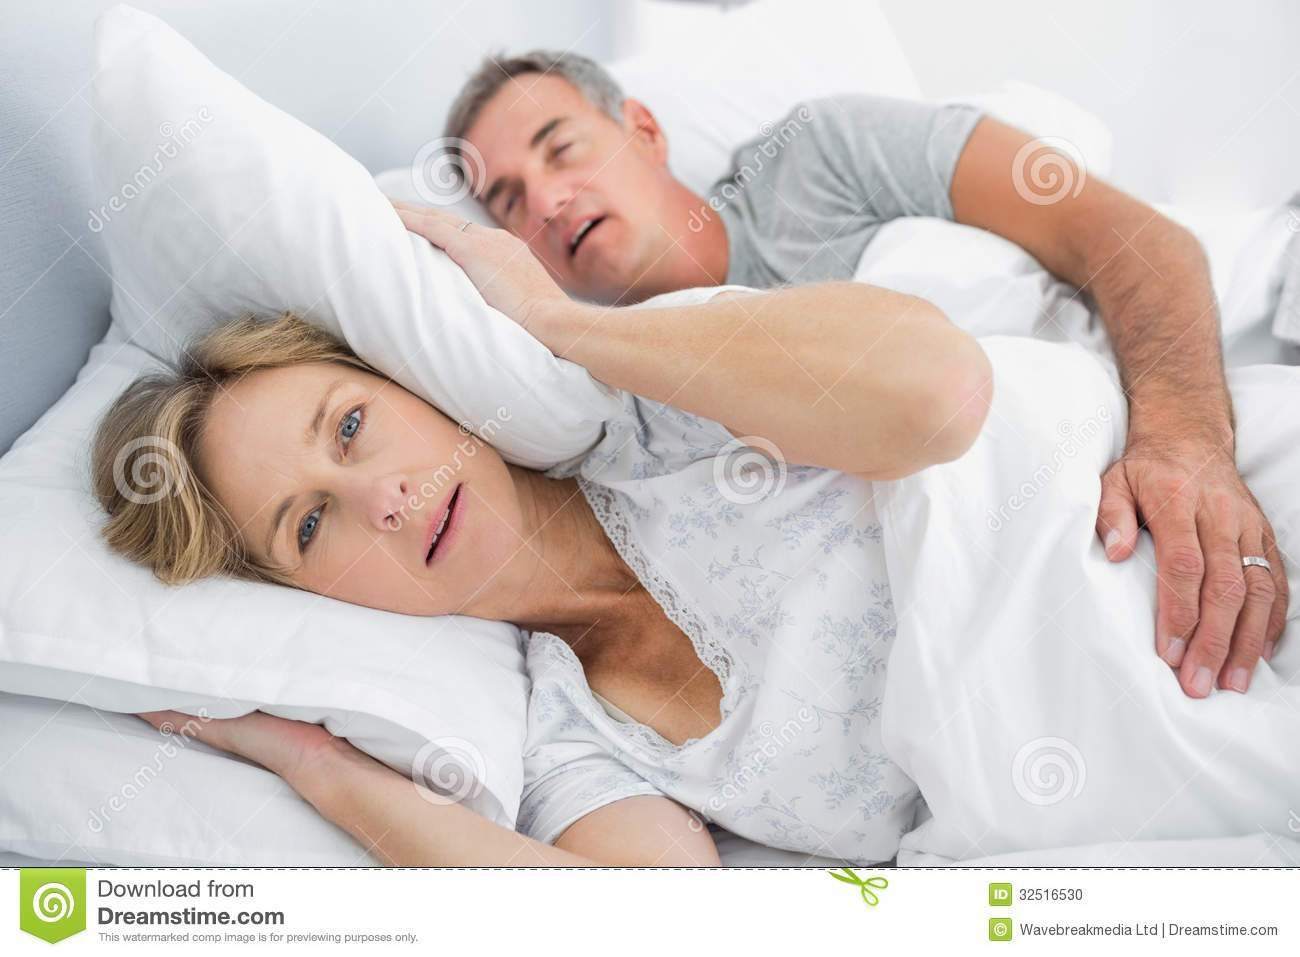 Best Irritated Wife Blocking Her Ears From Noise Of Husband With Pictures